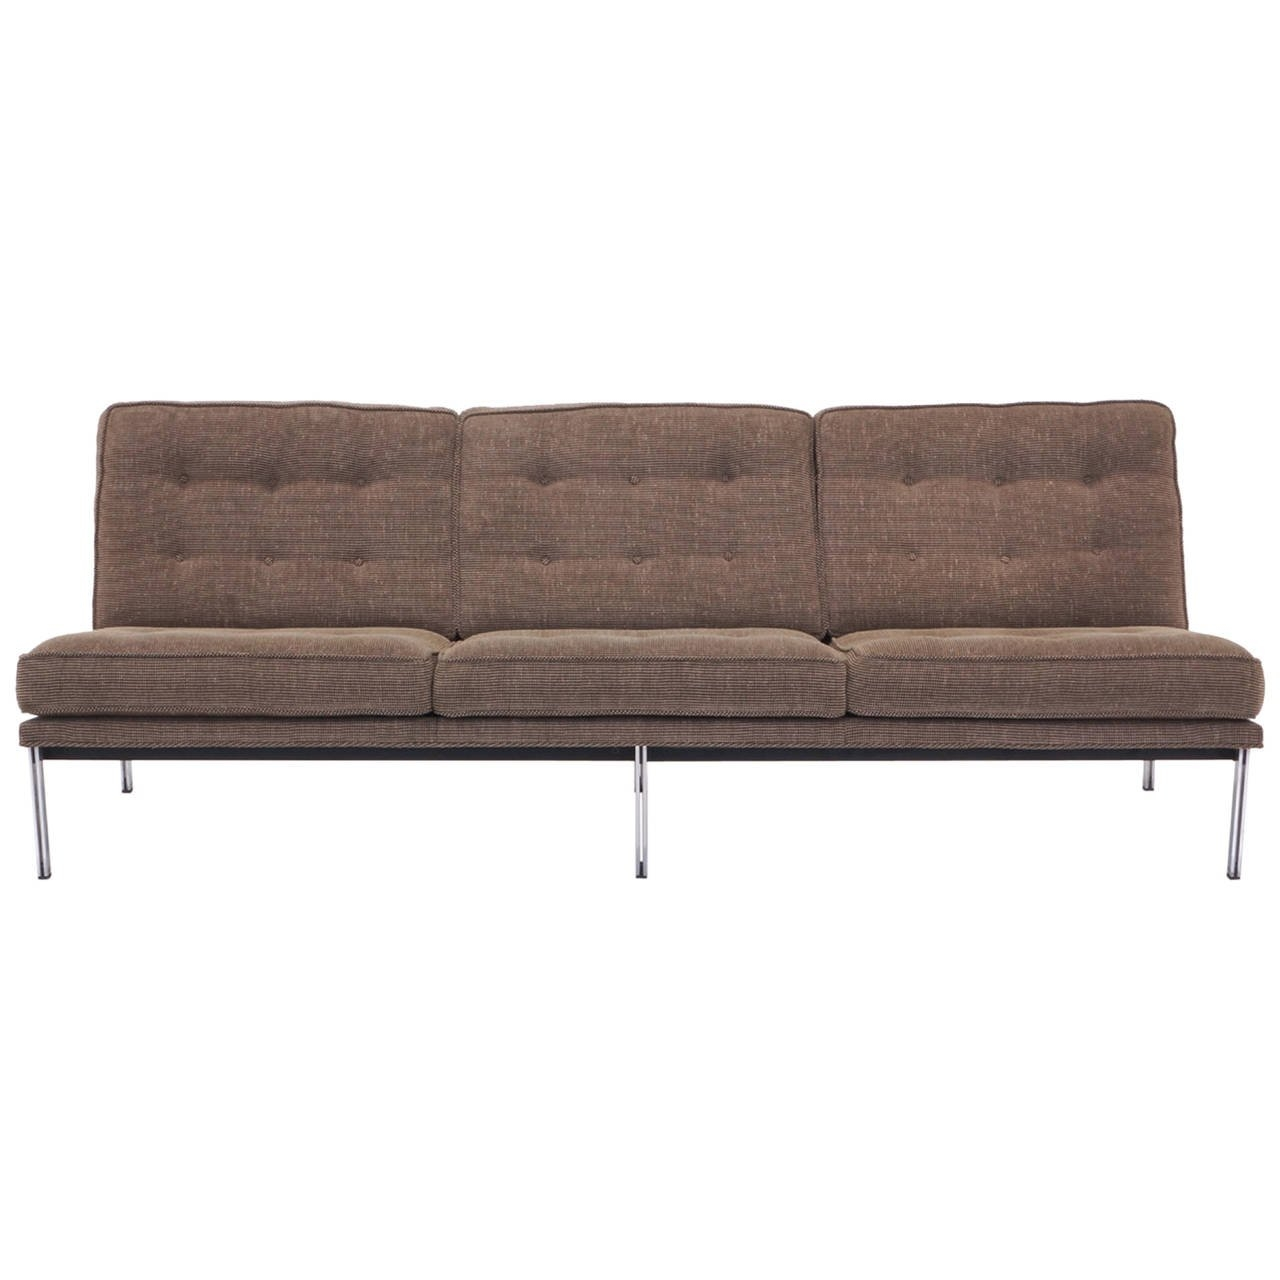 Florence Knoll Parallel Bar Three Seat Armless Sofa At 1stdibs Throughout Florence Grand Sofas (Image 6 of 15)